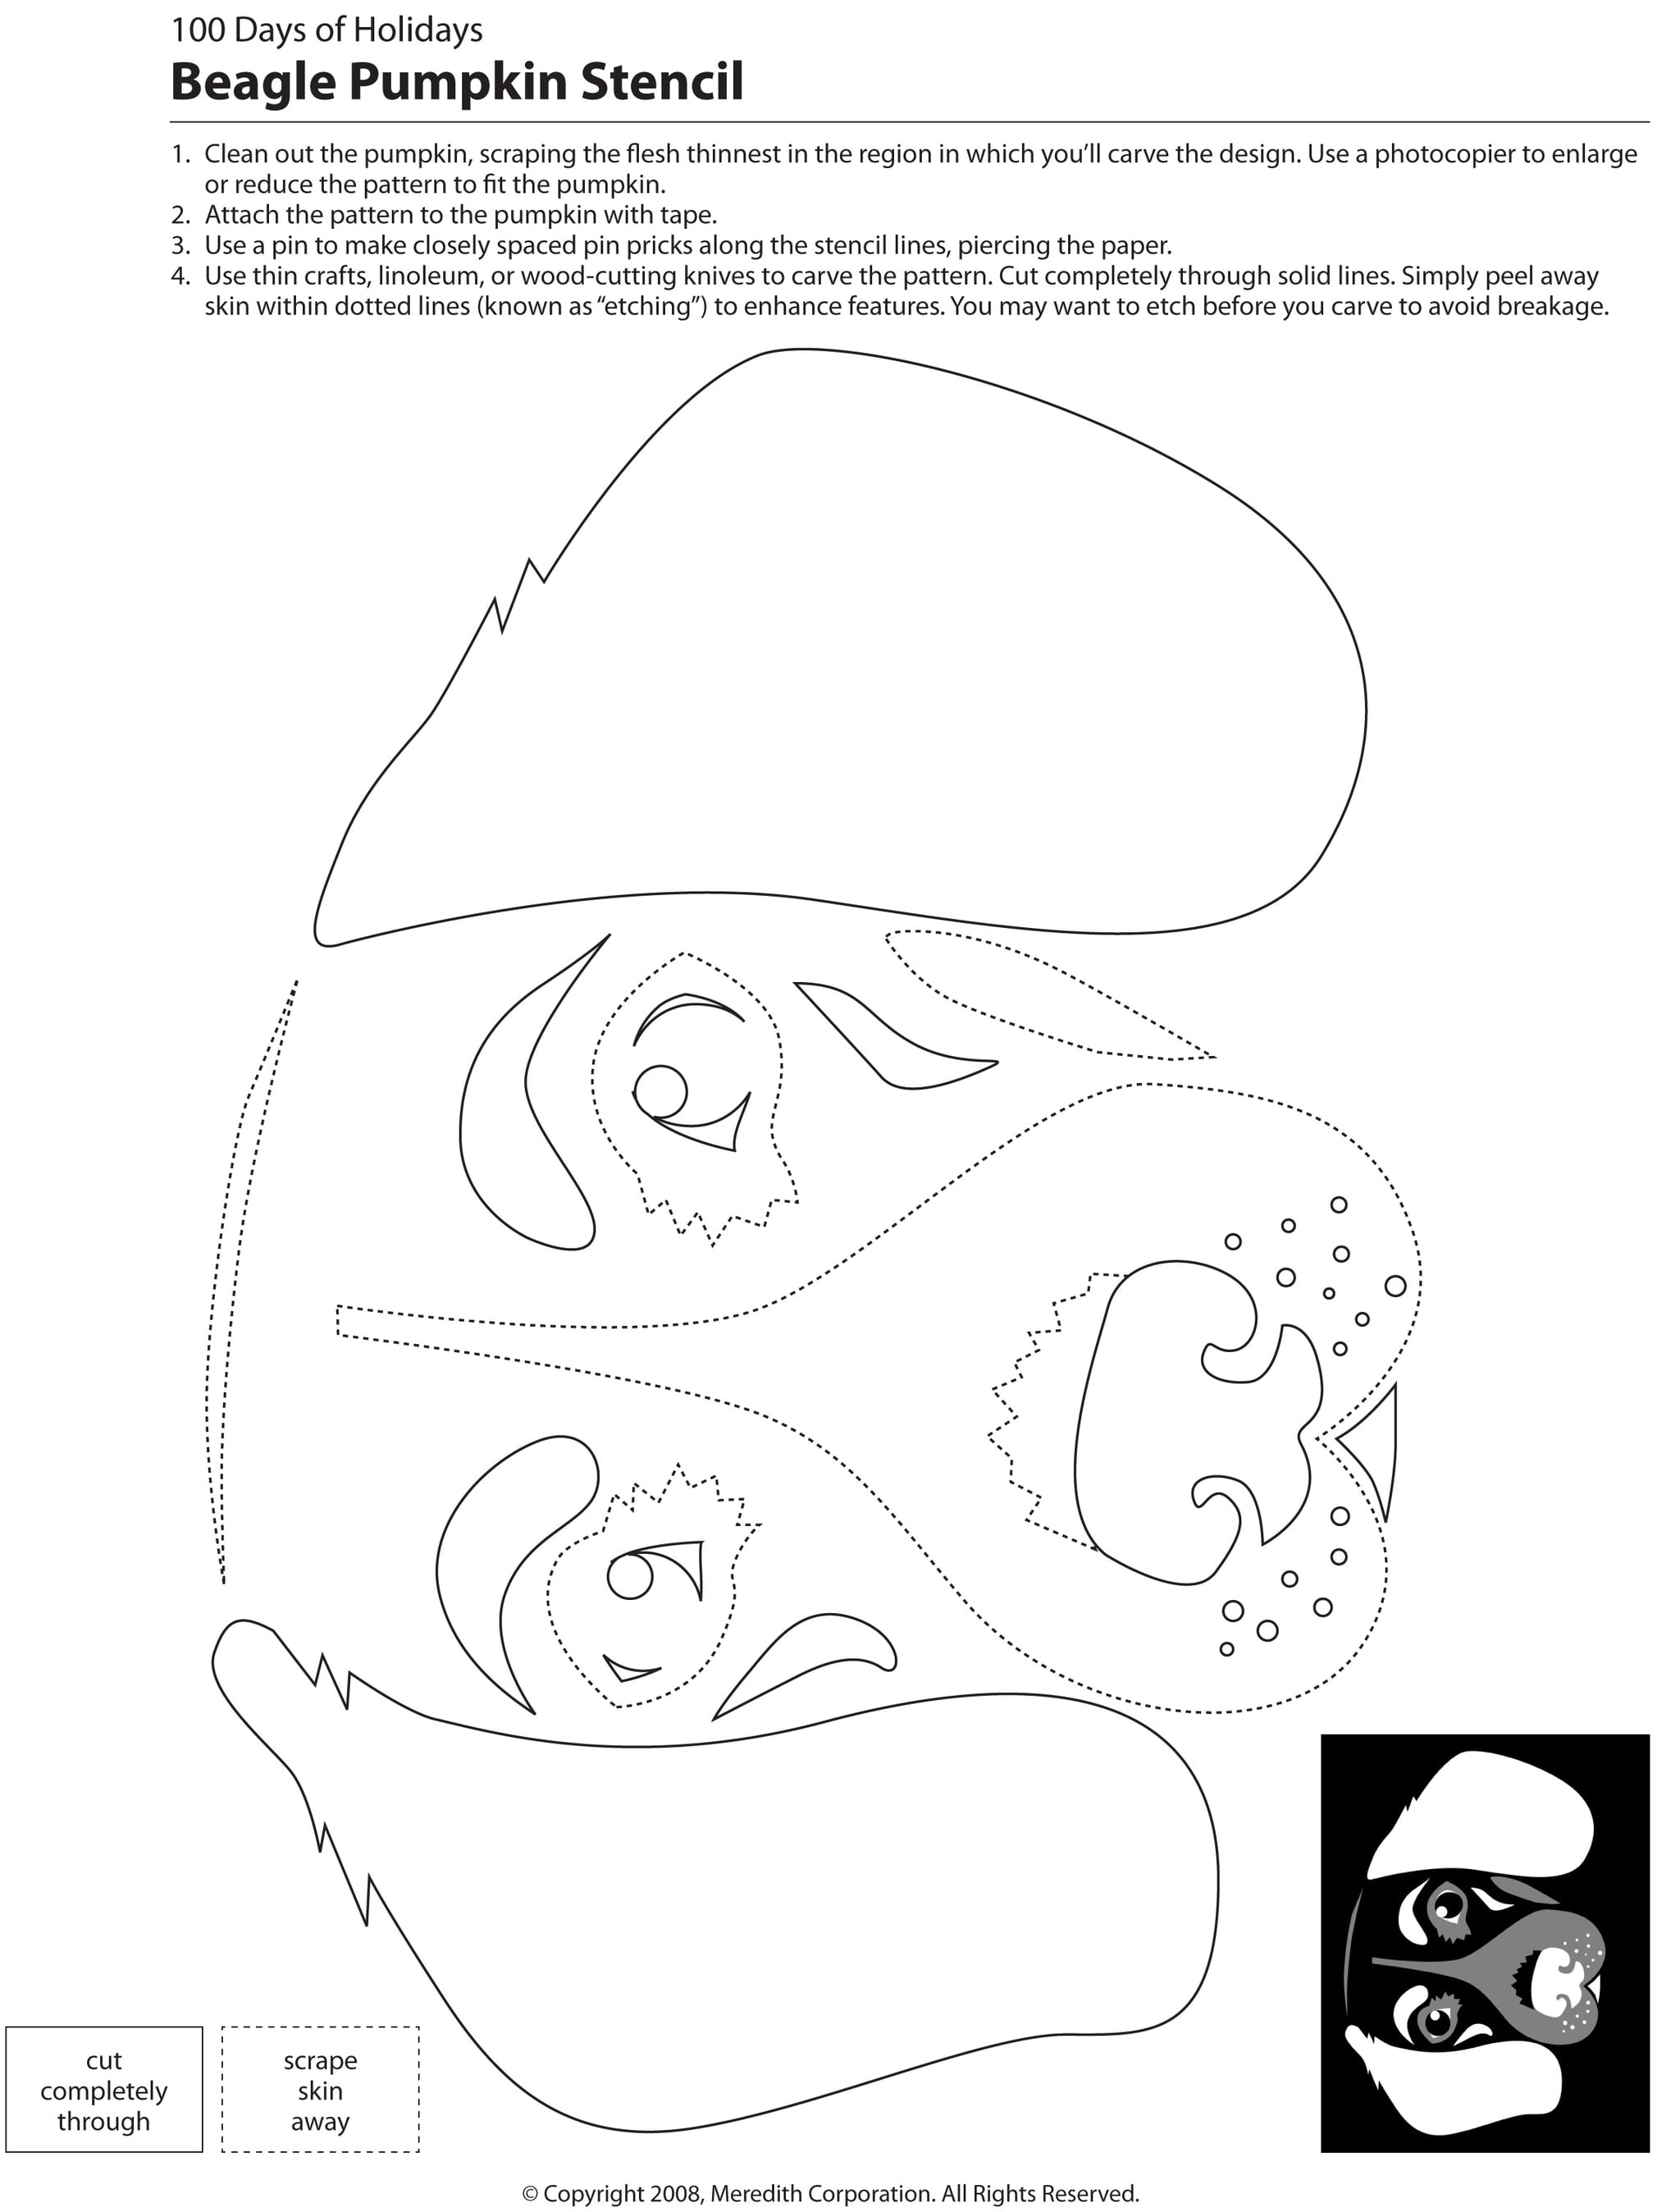 image about Printable Dog Stencils named 22 Absolutely free Pumpkin Carving Pet Stencils (Breed Particular person